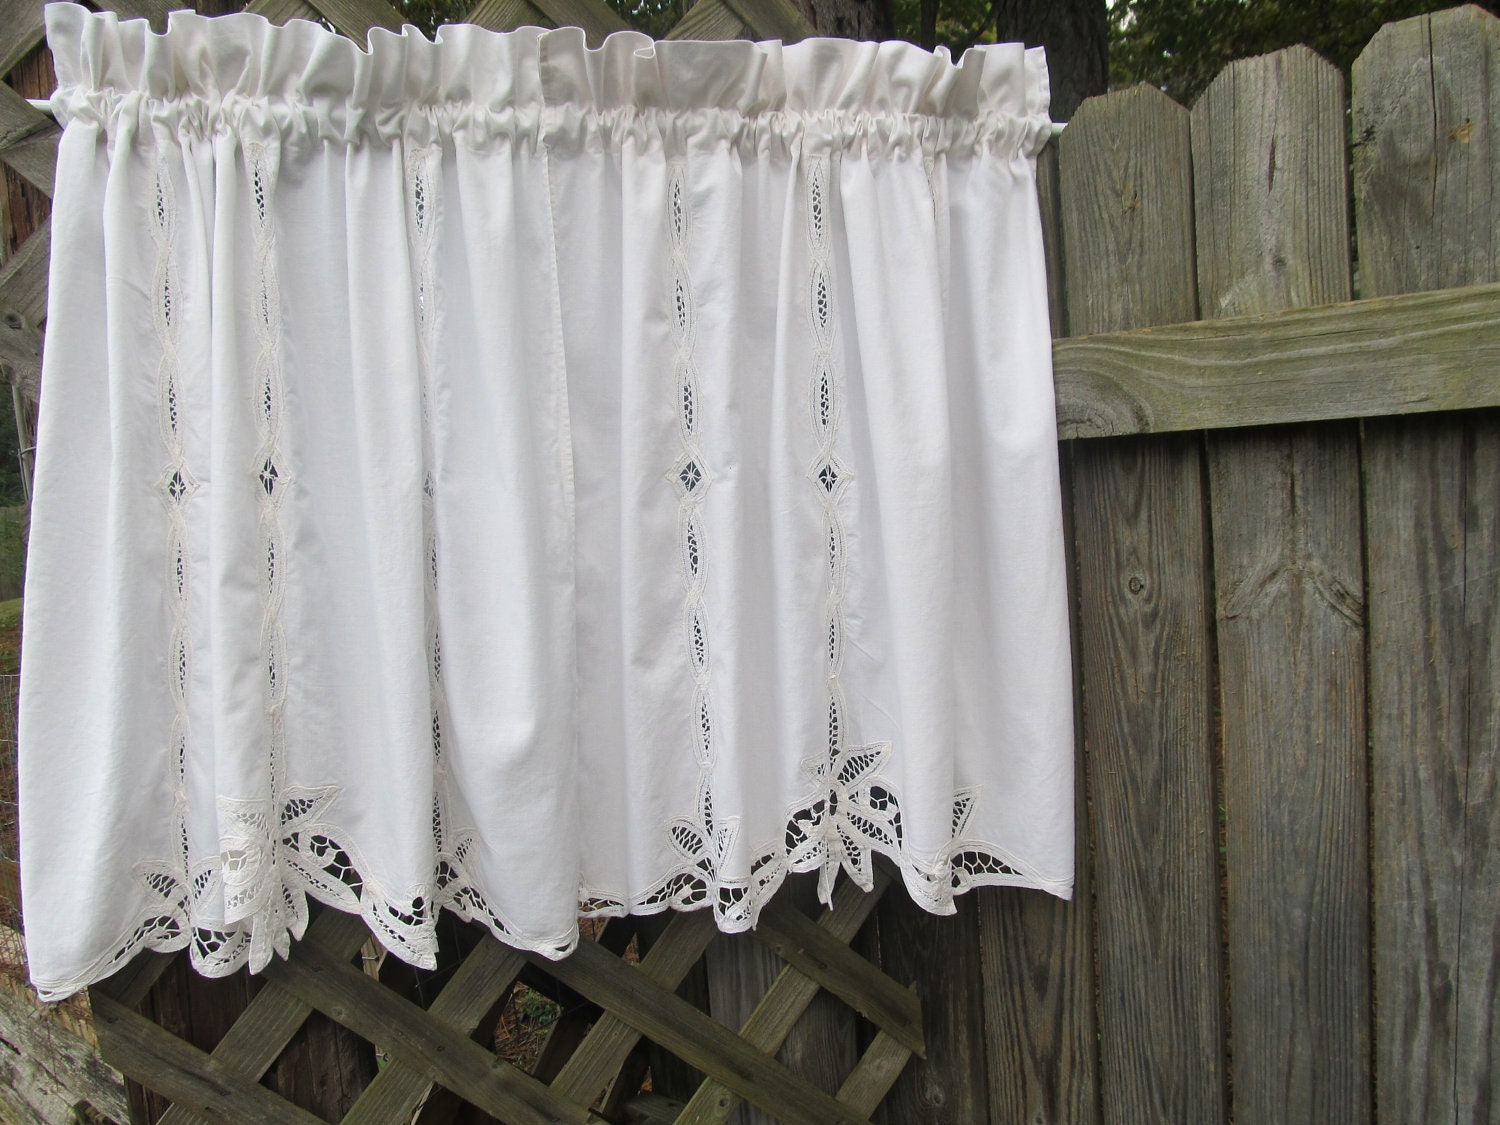 Battenburg Lace Country Window Curtain Valances For Kitchen Or